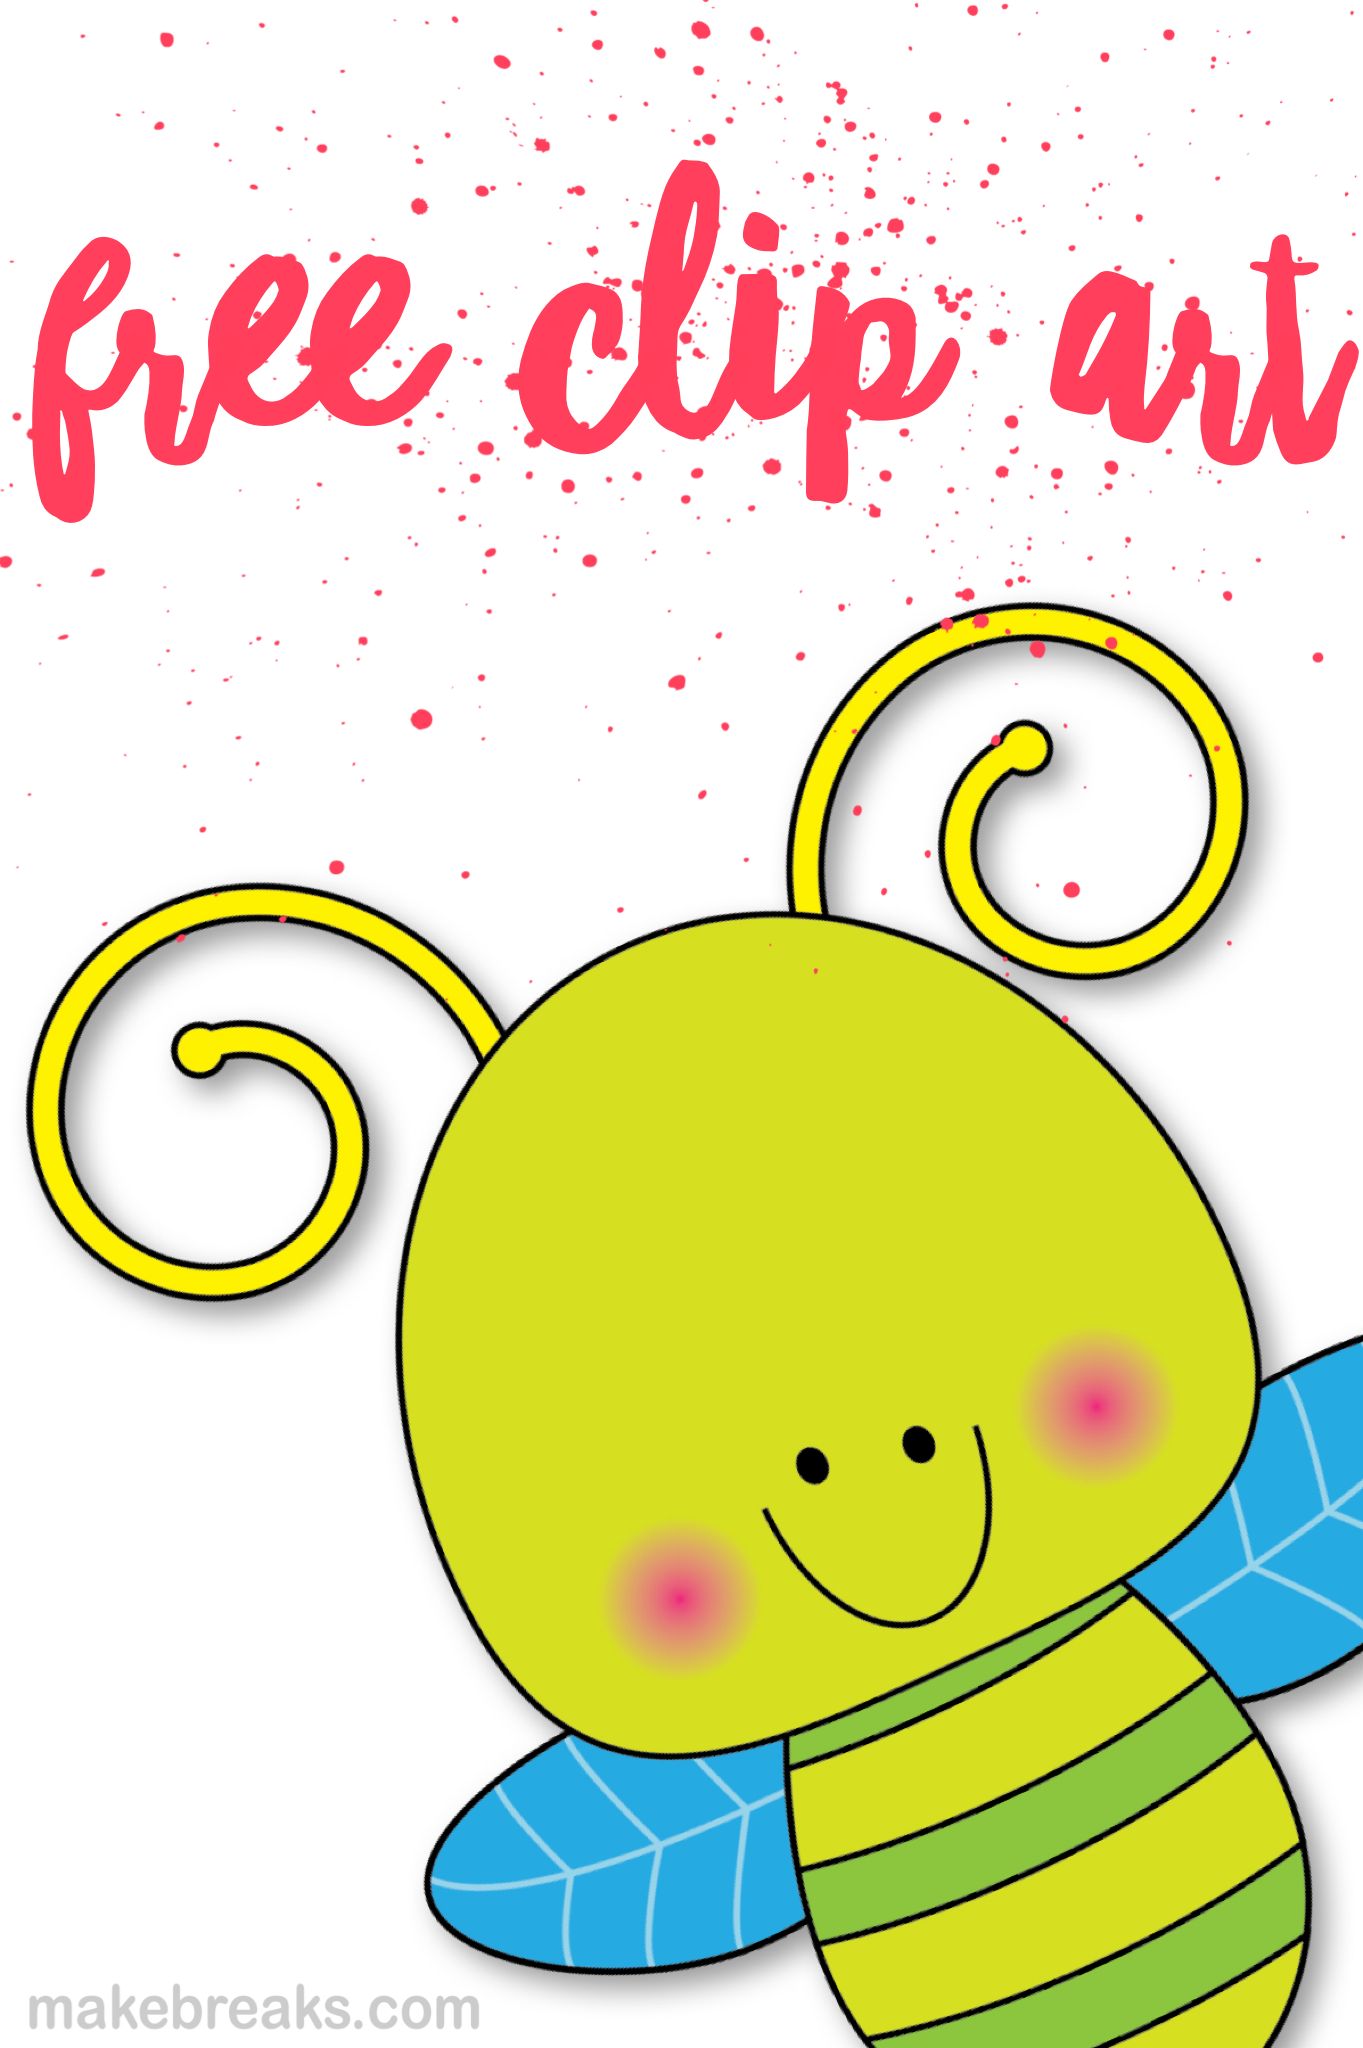 Free clipart for teachers! OK to use in teaching resources.